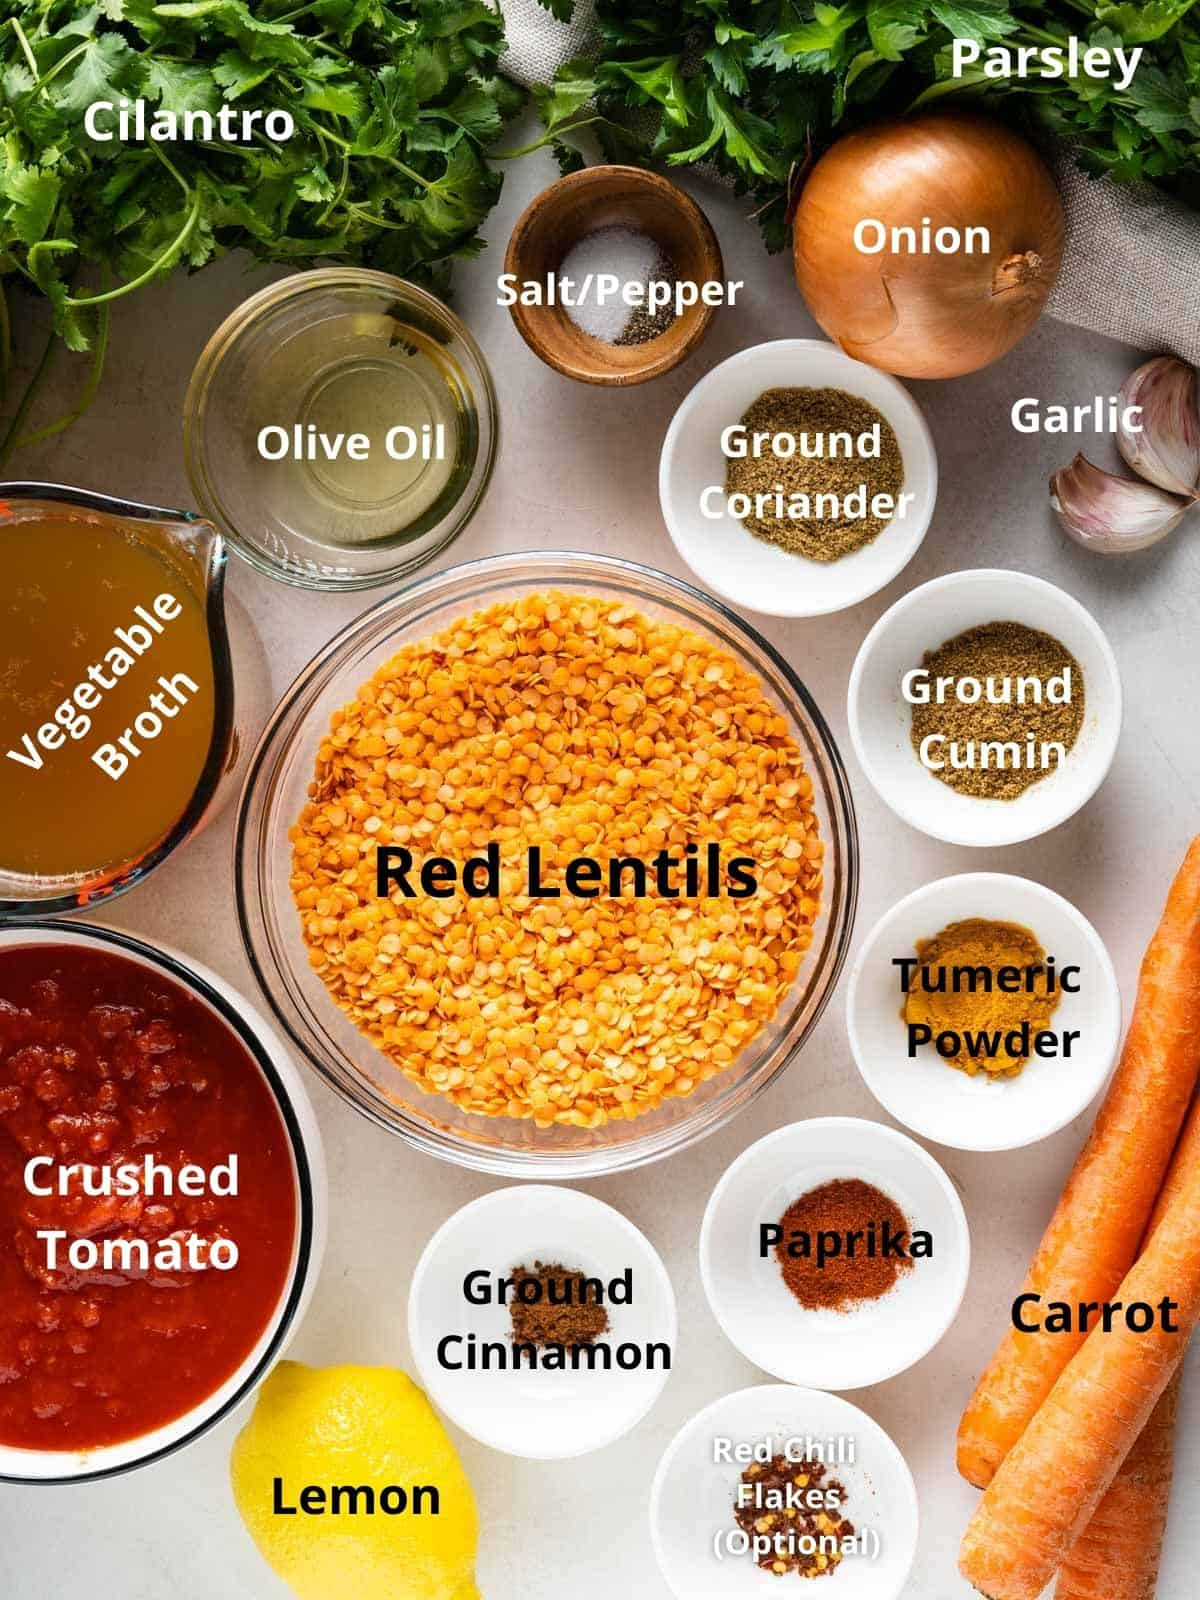 All the ingredients needed for this recipe, labeled